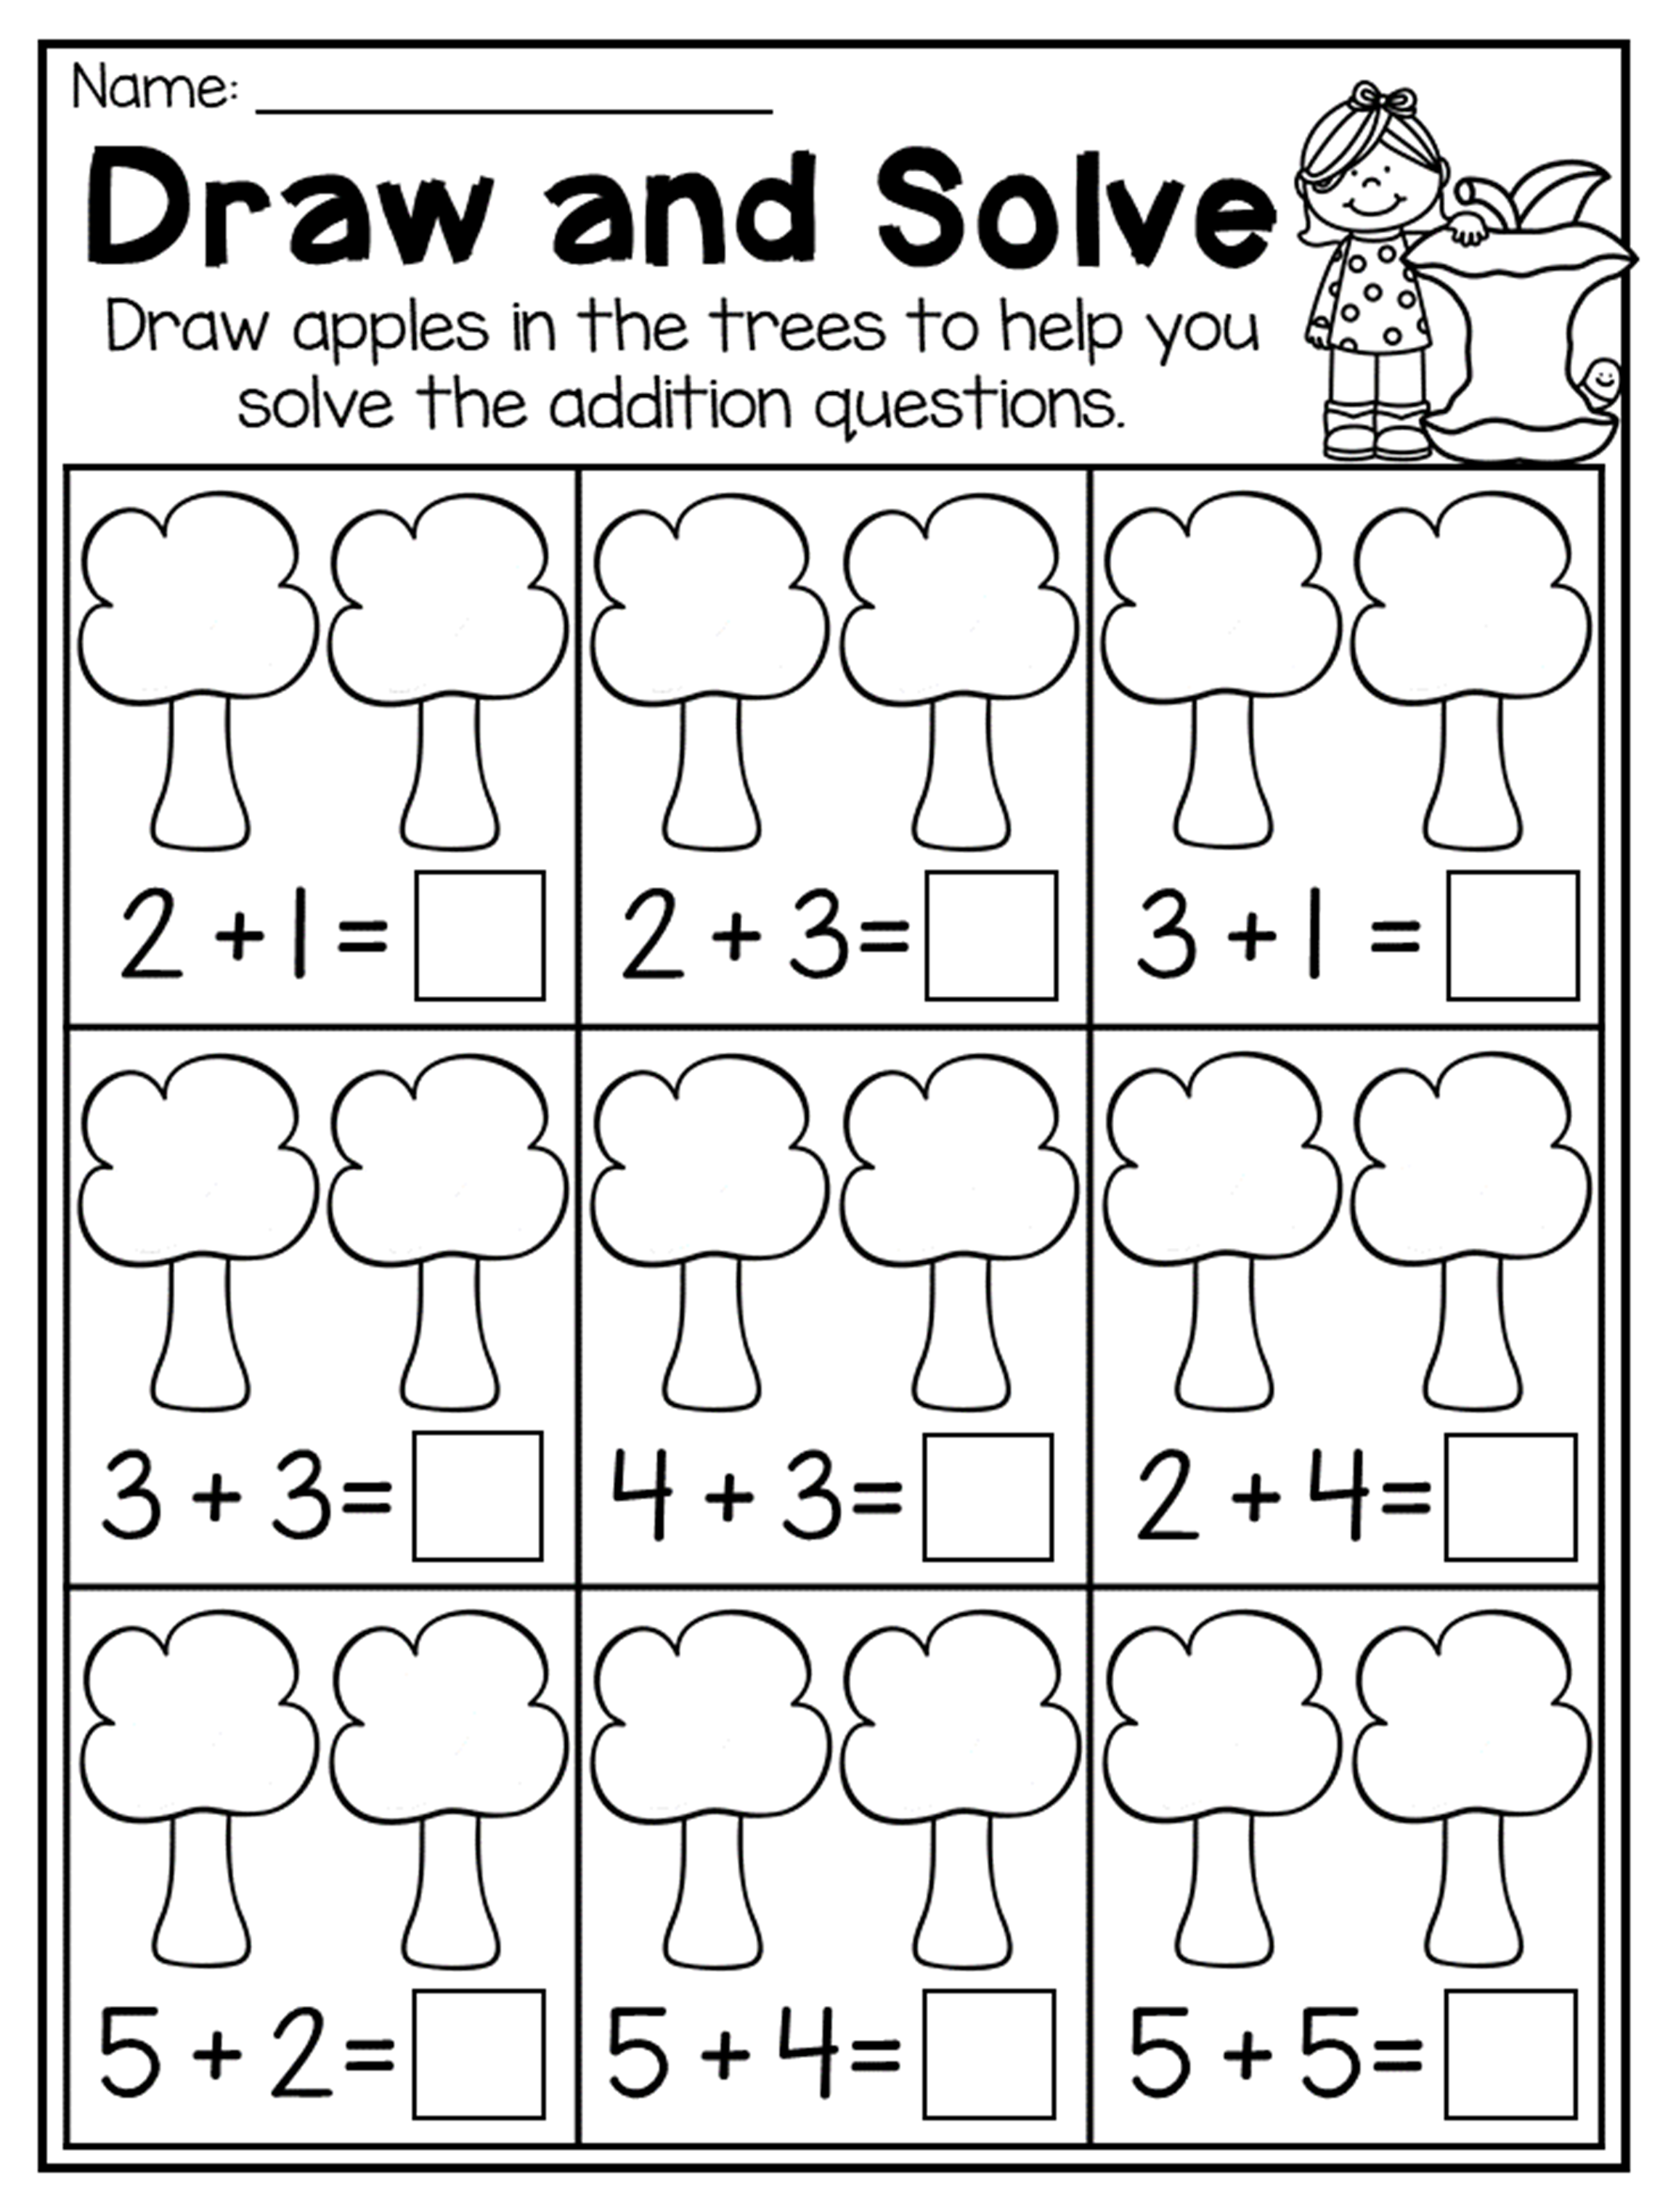 Worksheets Fall Math Worksheets fall kindergarten math and literacy worksheet pack addition apple this features so many diverse activities relati